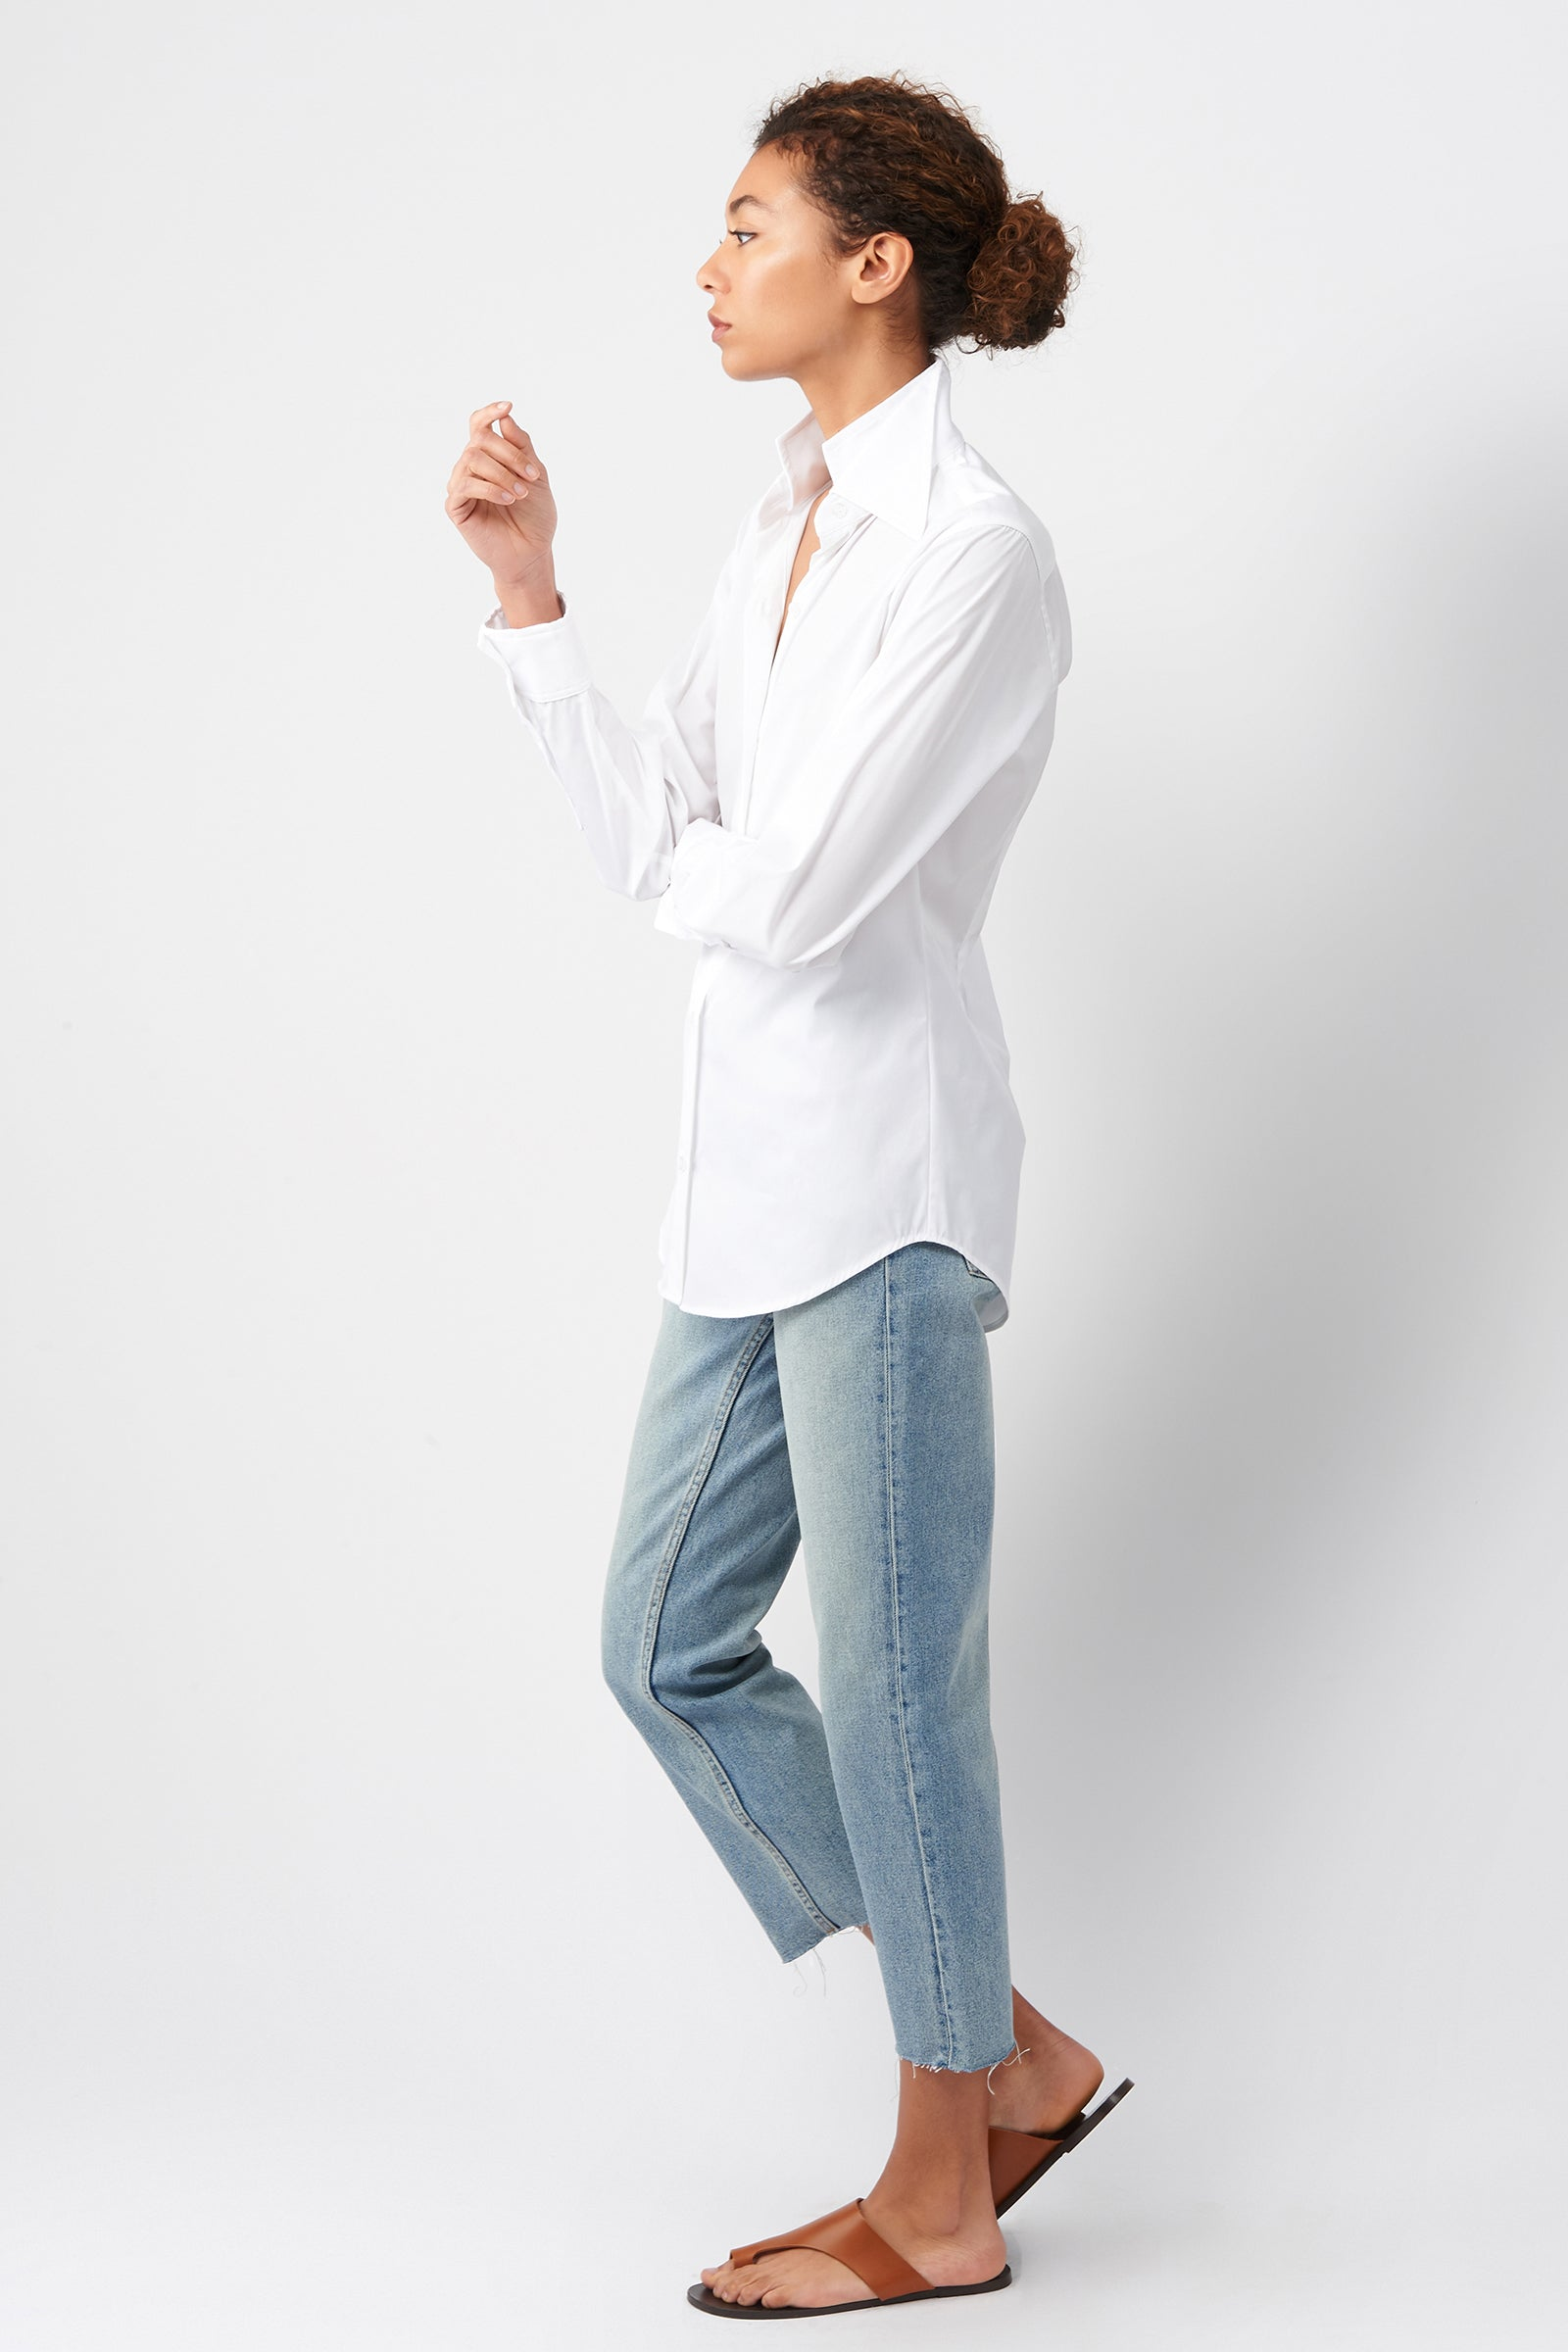 Kal Rieman Double Collar Shirt in White Cotton on Model Side View